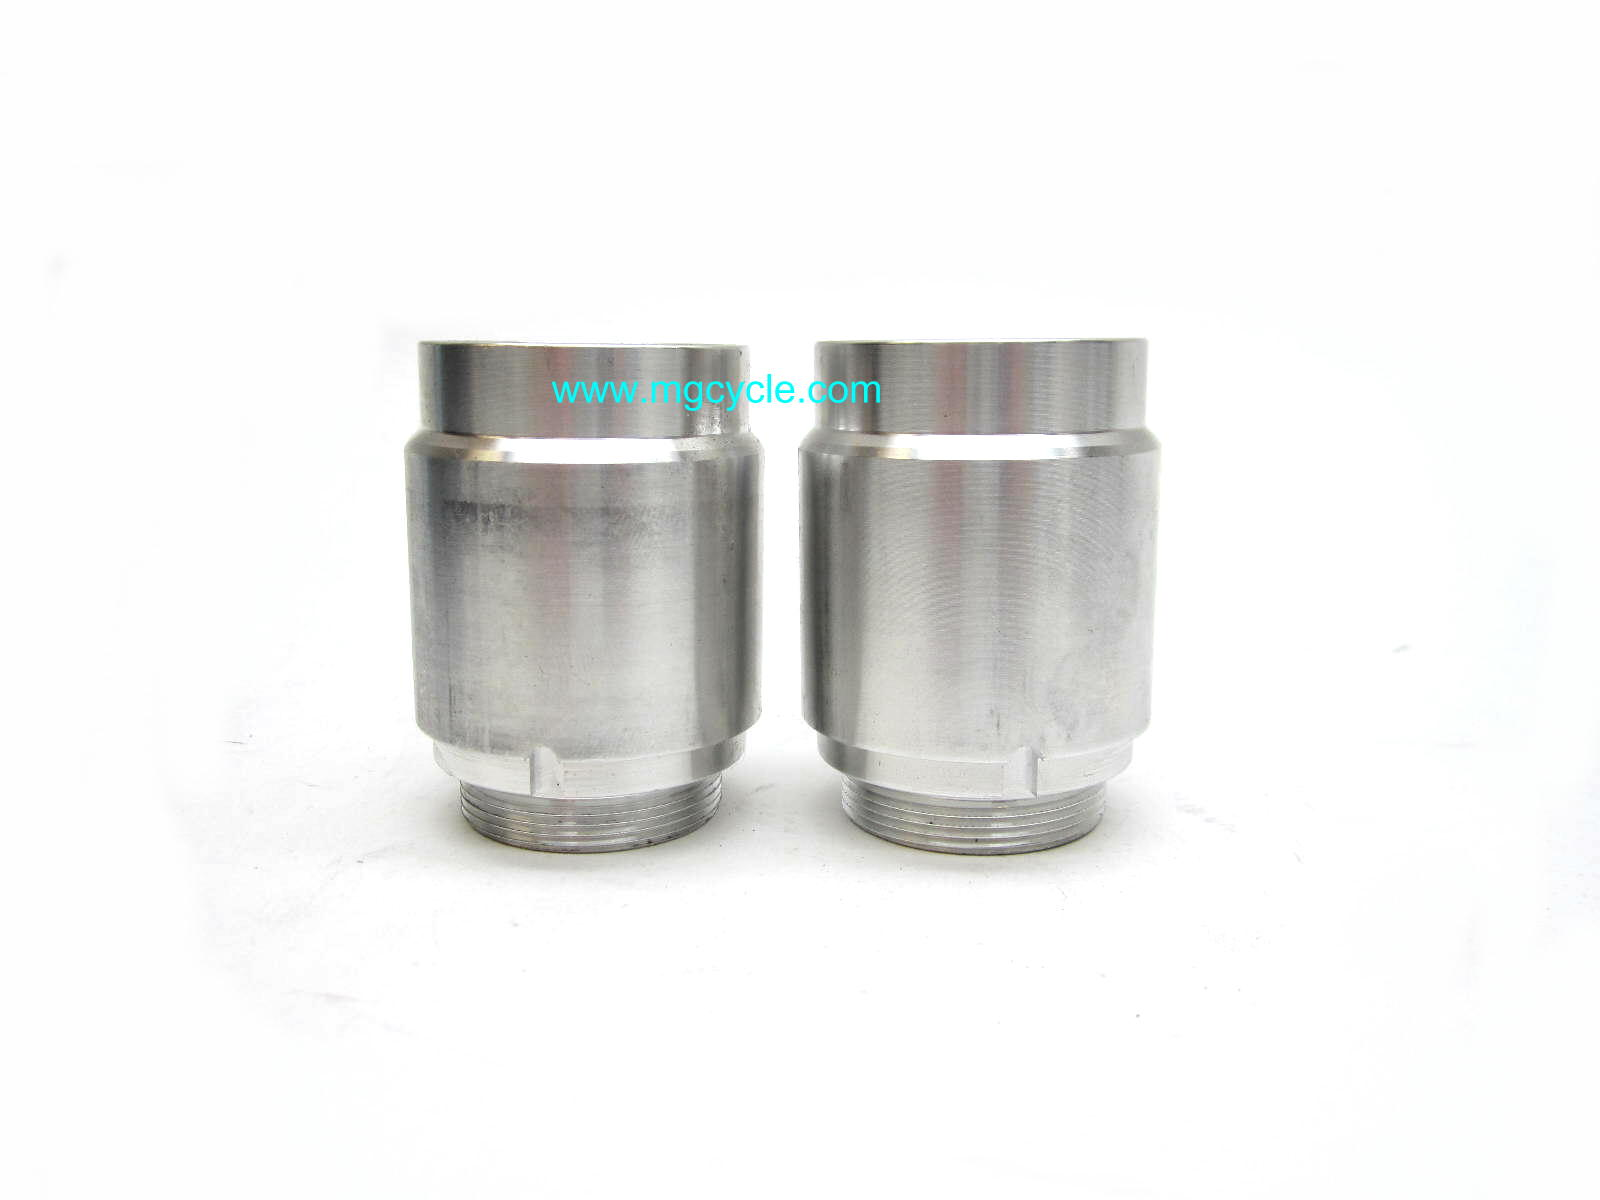 Pair of velocity stacks for VHB carbs Eld Amb T T3 V7 Sport more